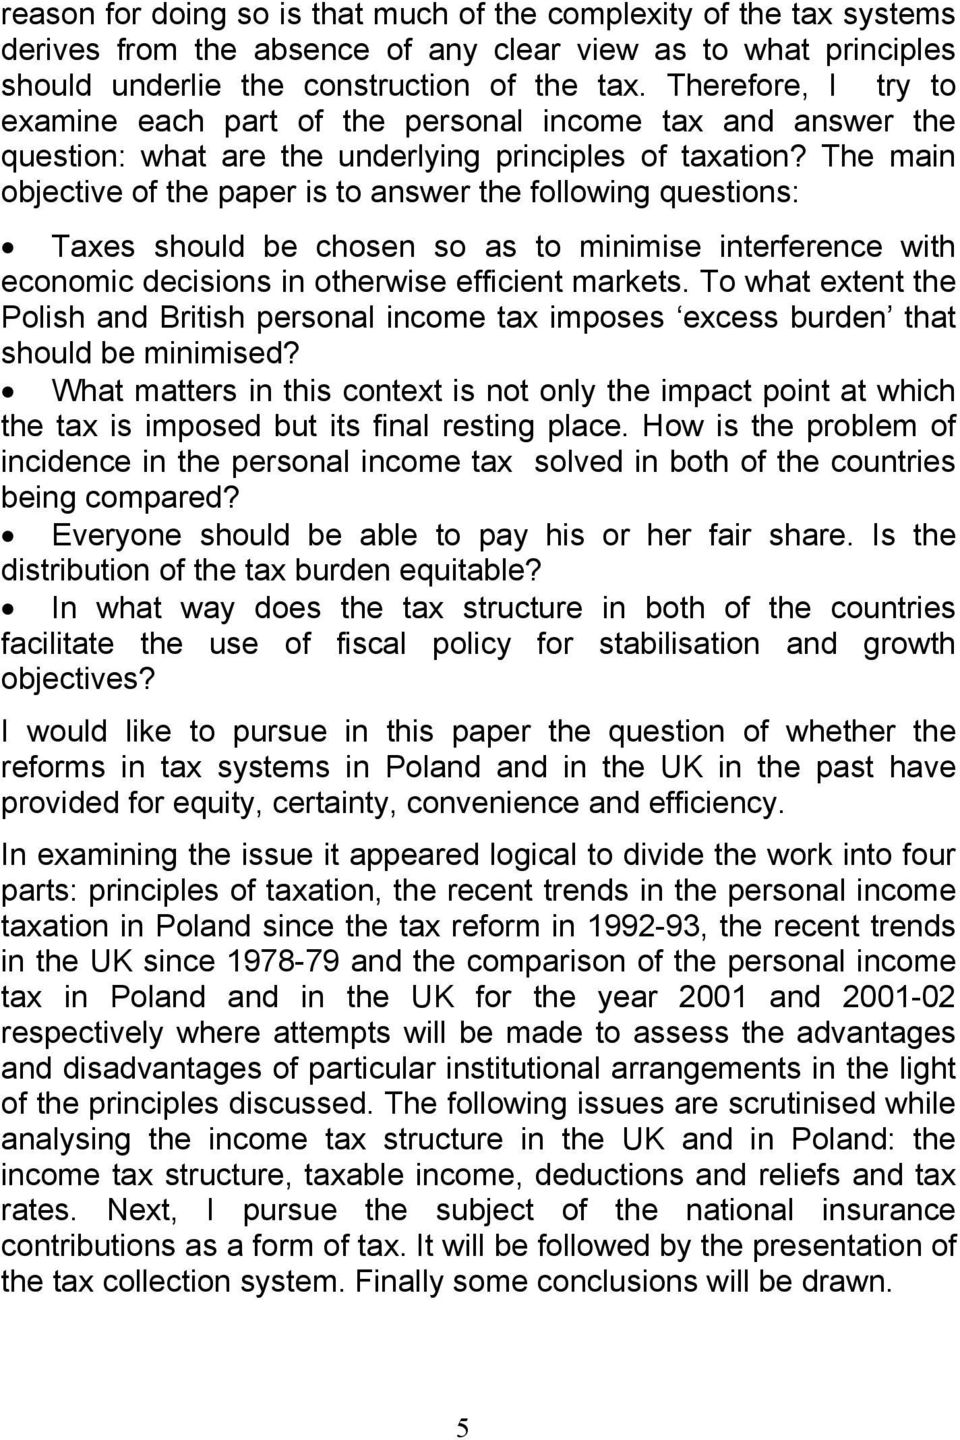 The main objective of the paper is to answer the following questions: Taxes should be chosen so as to minimise interference with economic decisions in otherwise efficient markets.